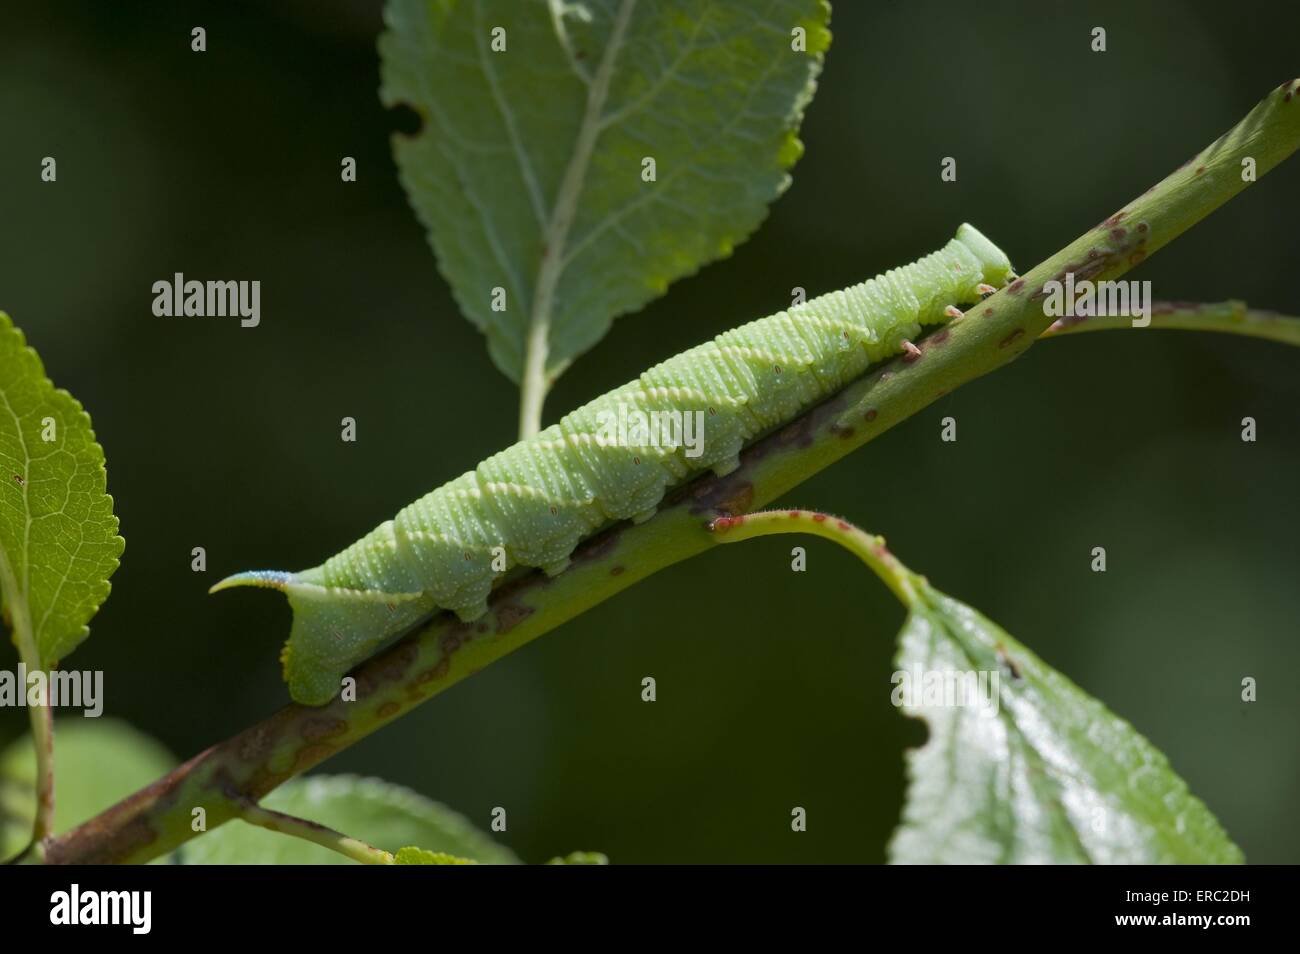 lime hawkmoth - Stock Image